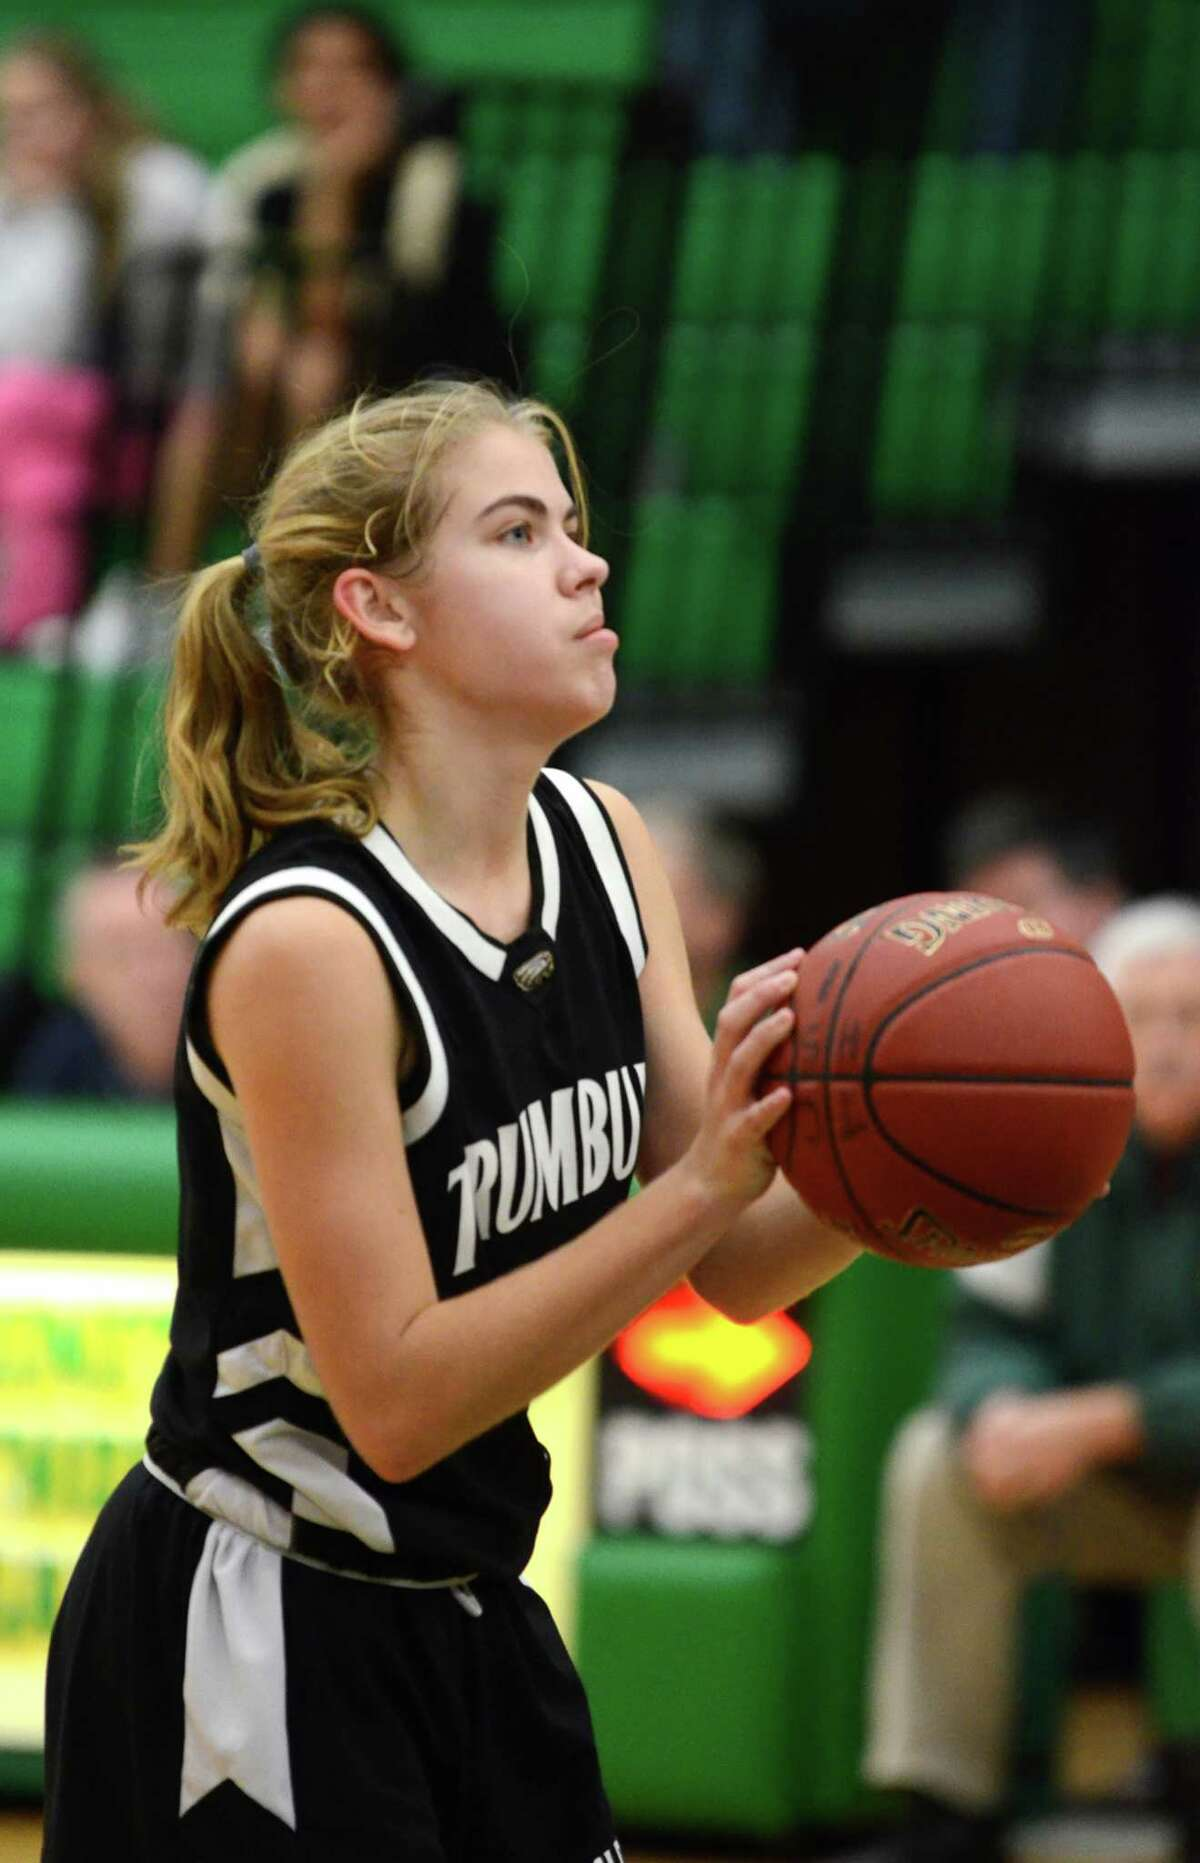 Trumbull's Alexa Pfohl (1) takes a foul shot during the girls basketball game against Trinity at Trinity Catholic High School in Stamford on Friday, Dec. 9, 2011.